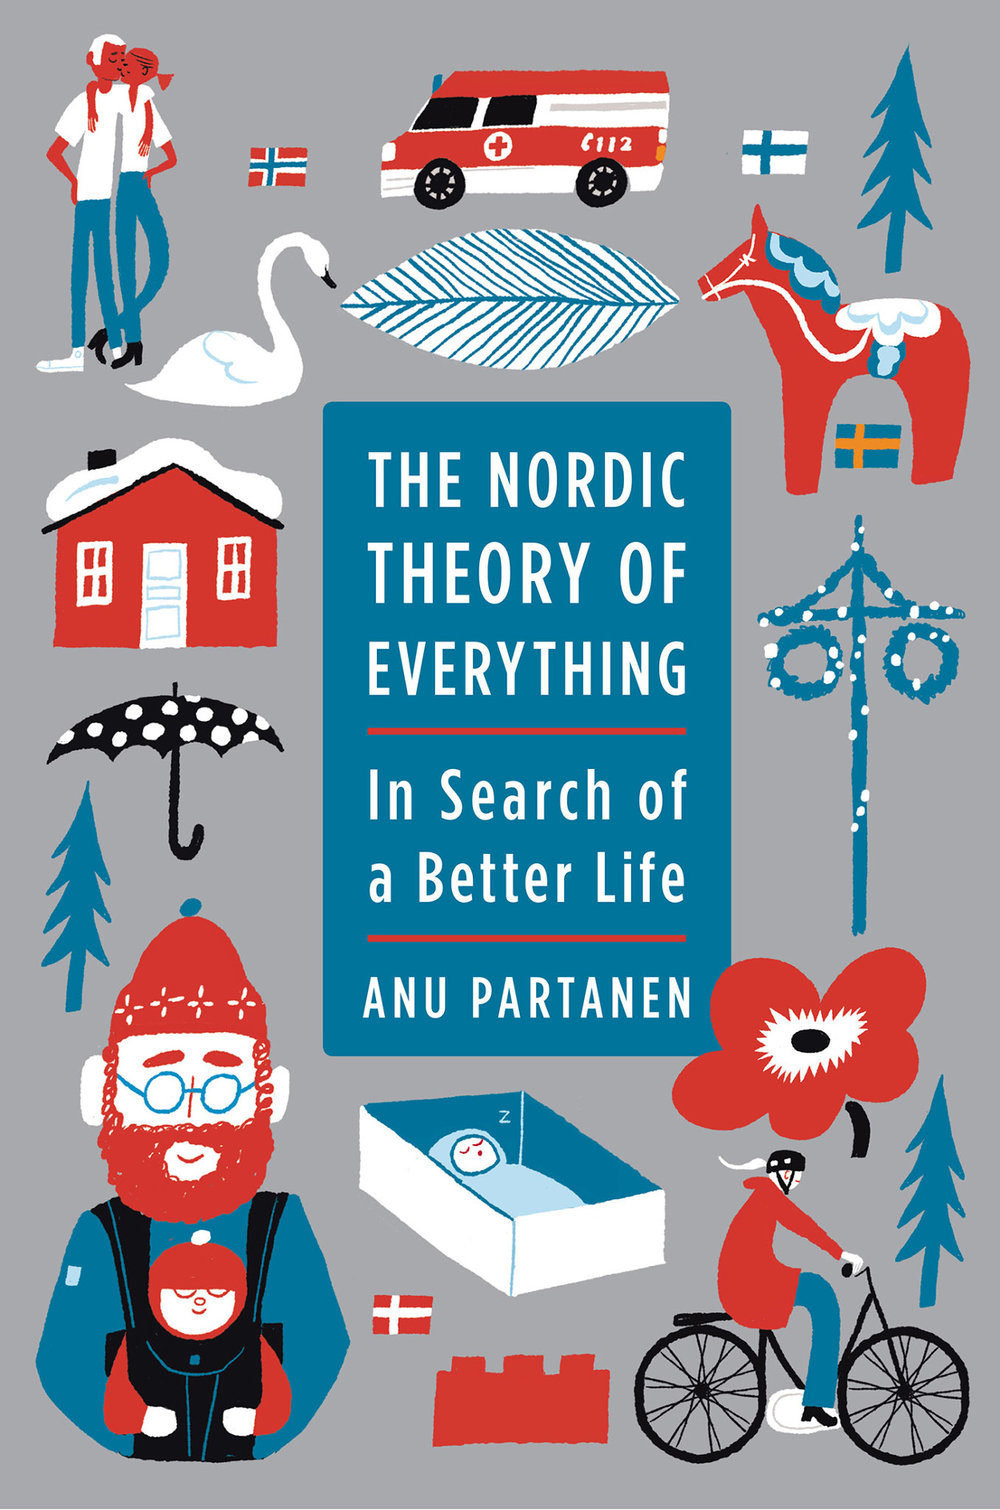 Nordic-Theory-of-Everything-hc-c_1250.jpg